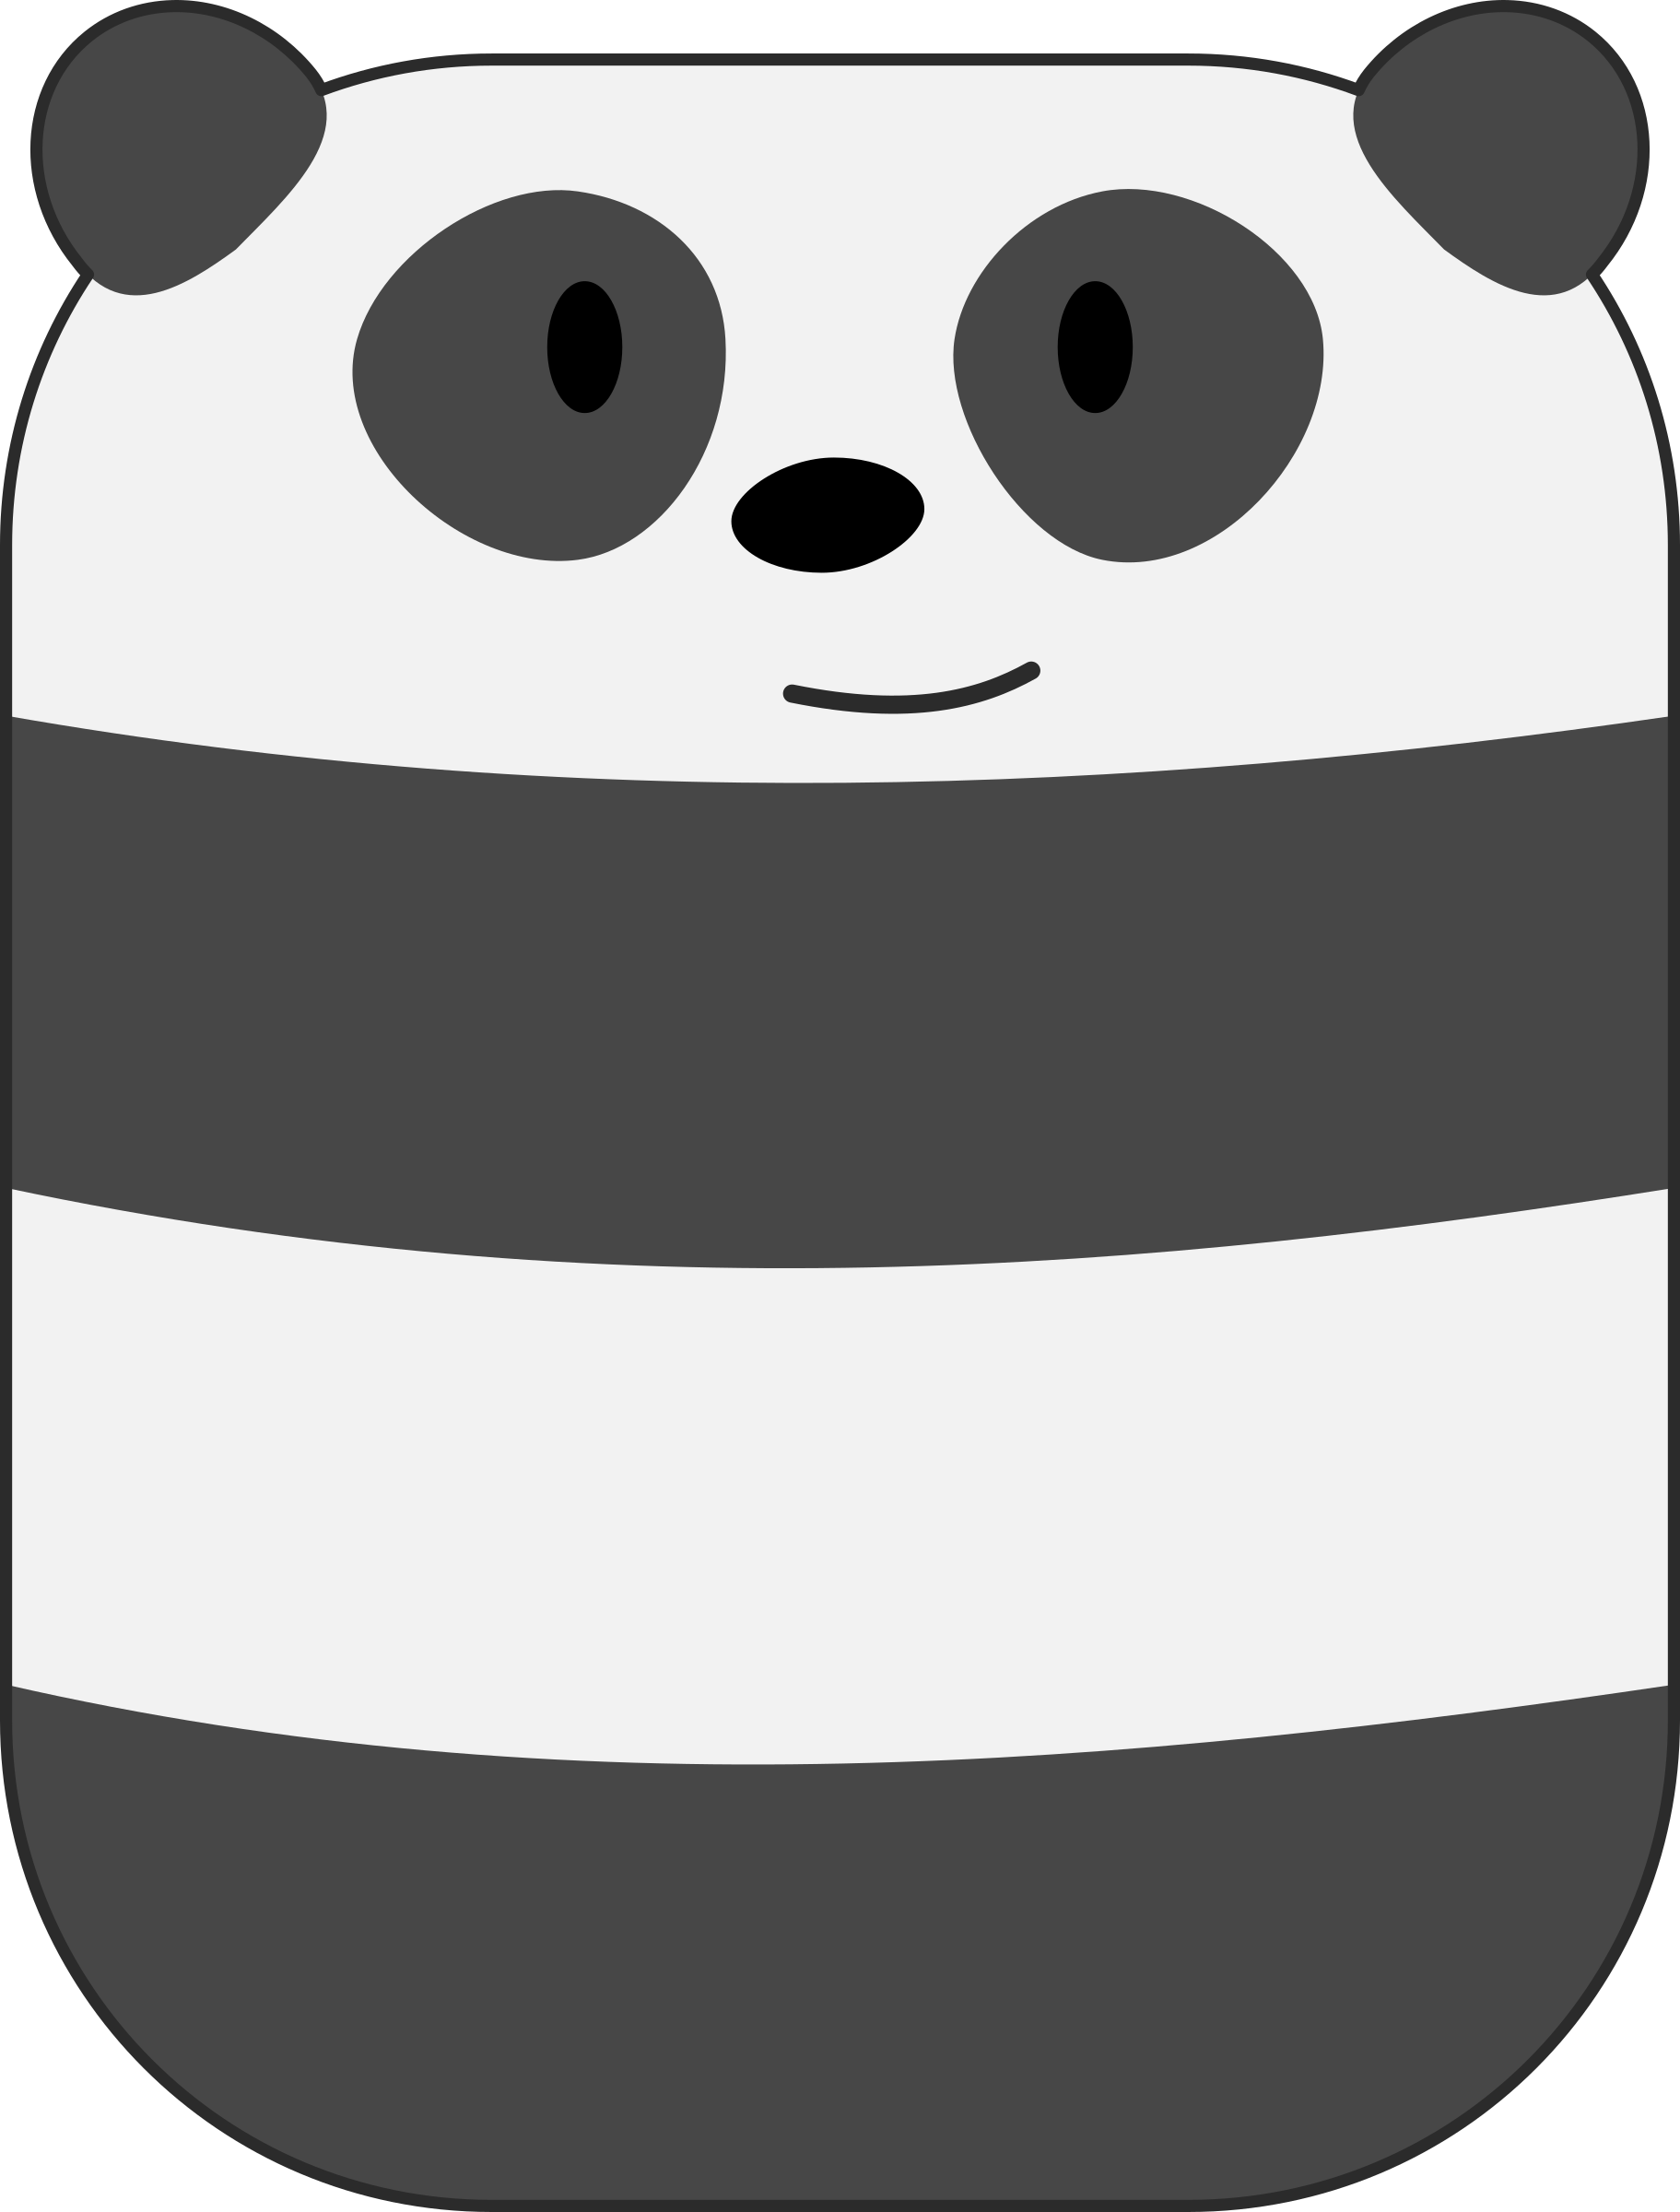 Smiling Panda by qubodup